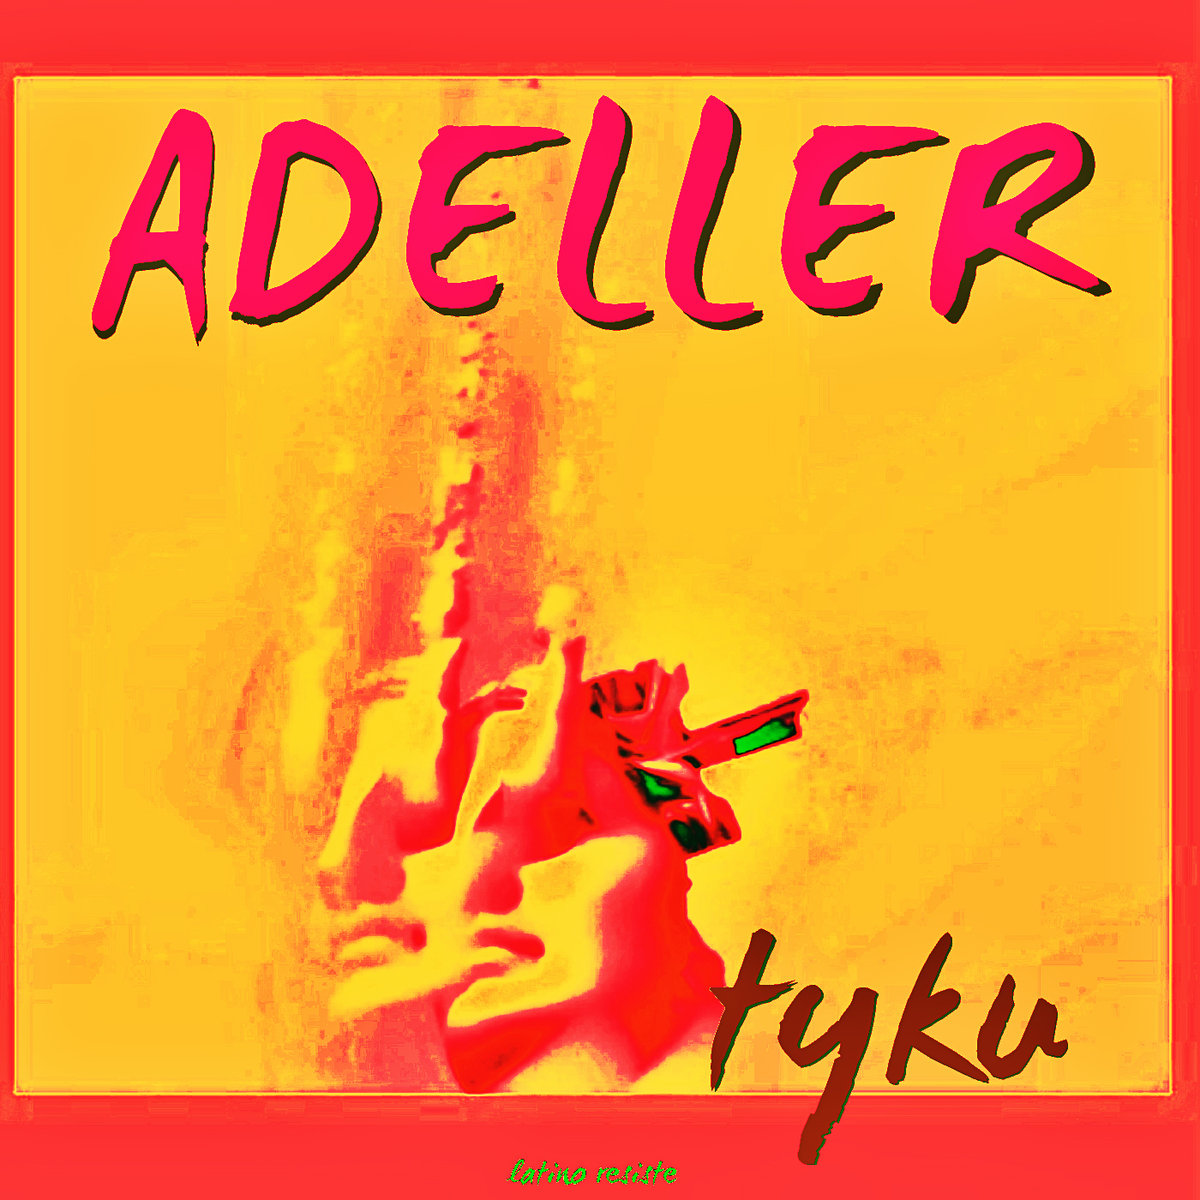 Mexican producer ADELLER unveils a catchy Afrobeat that is perfect for whether a djing party or simply personal abuse on your playlist. FREE DOWNLOAD